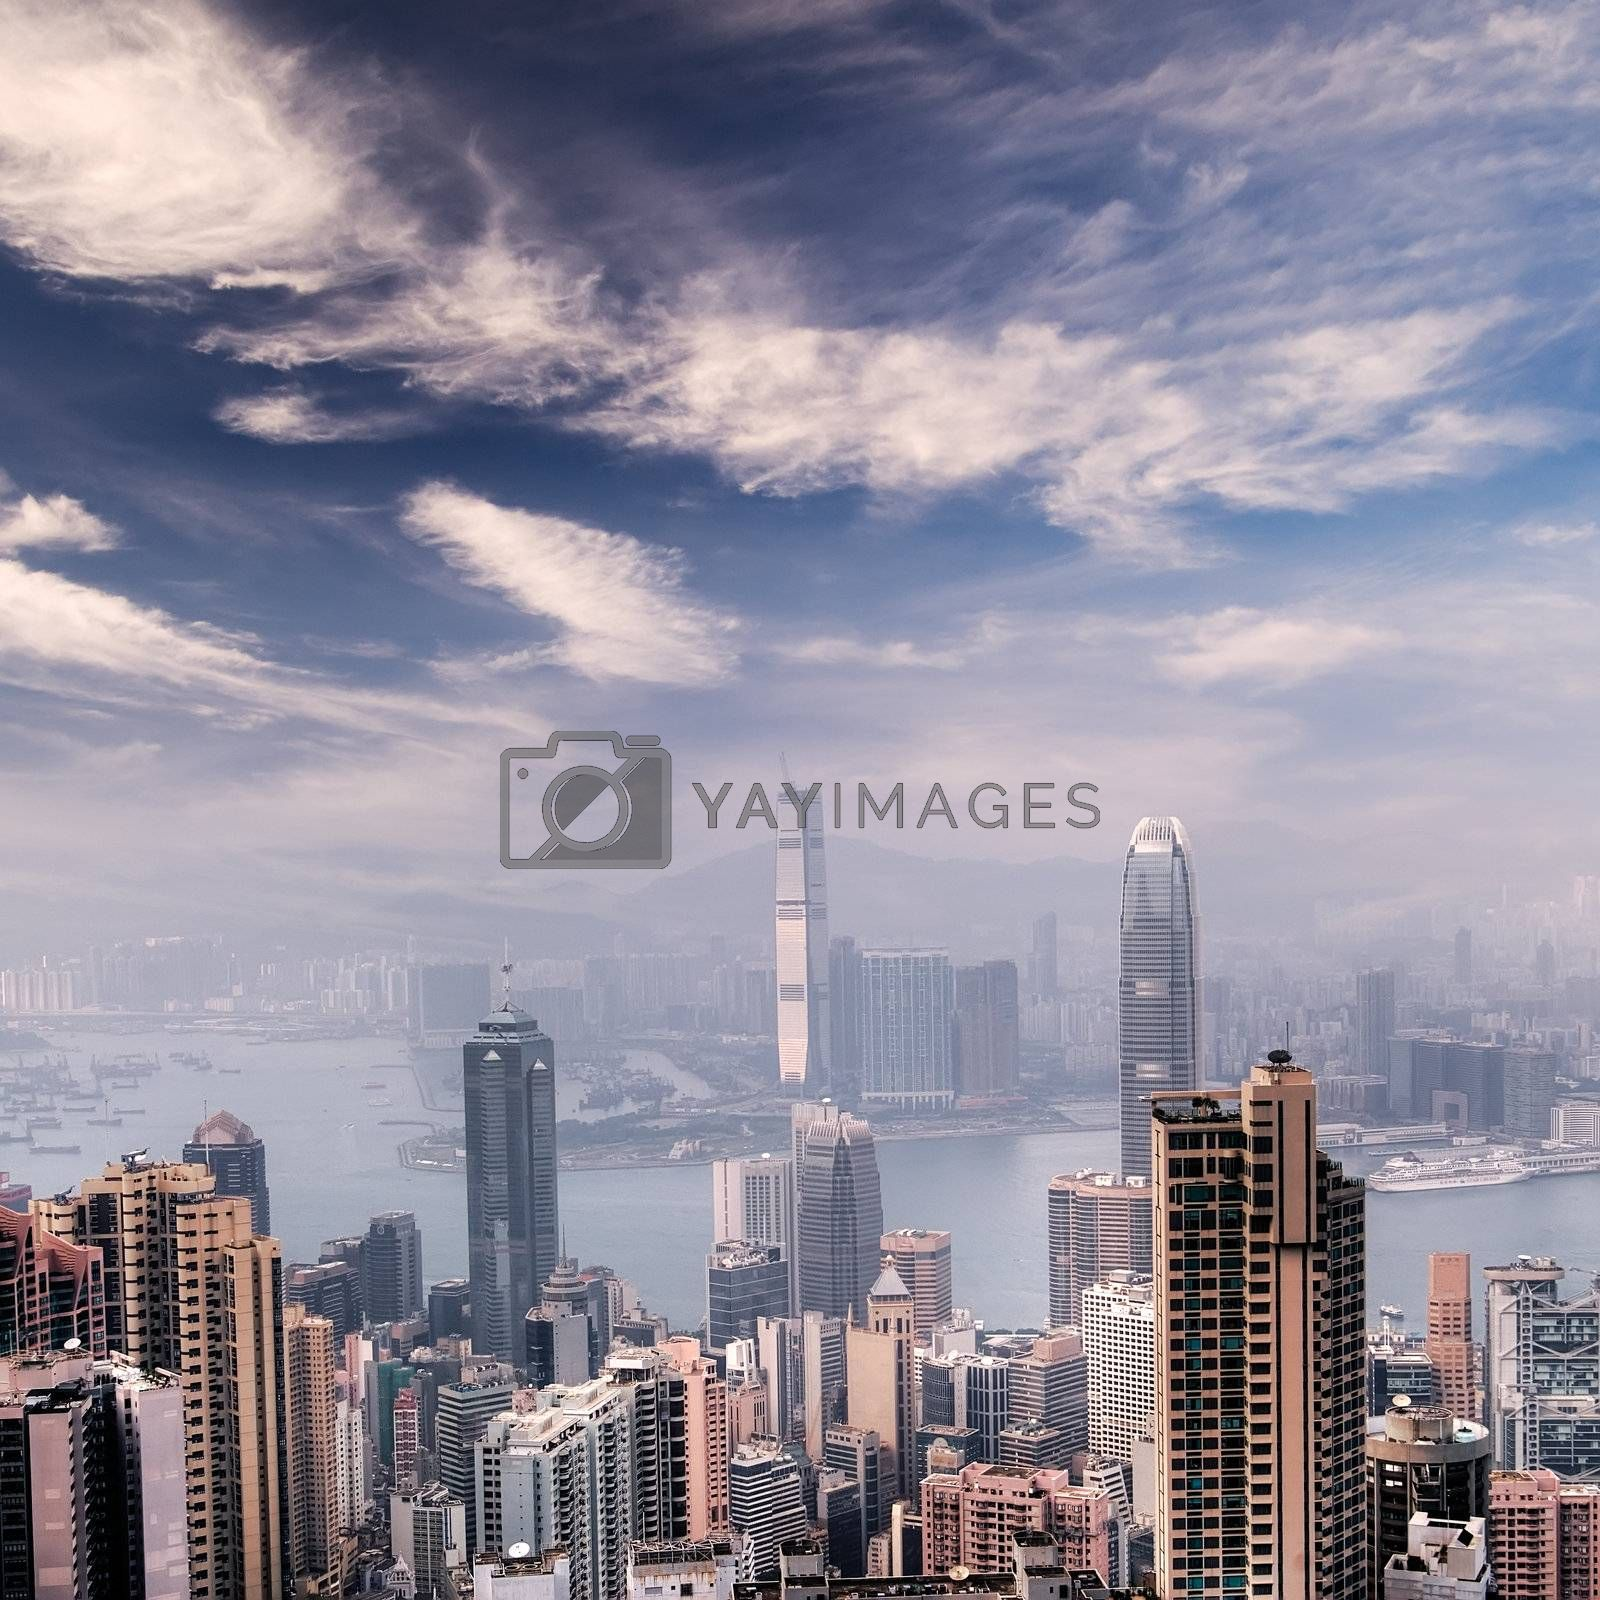 Cityscape of Hong Kong skyscrapers and skyline near the Victoria harbor.